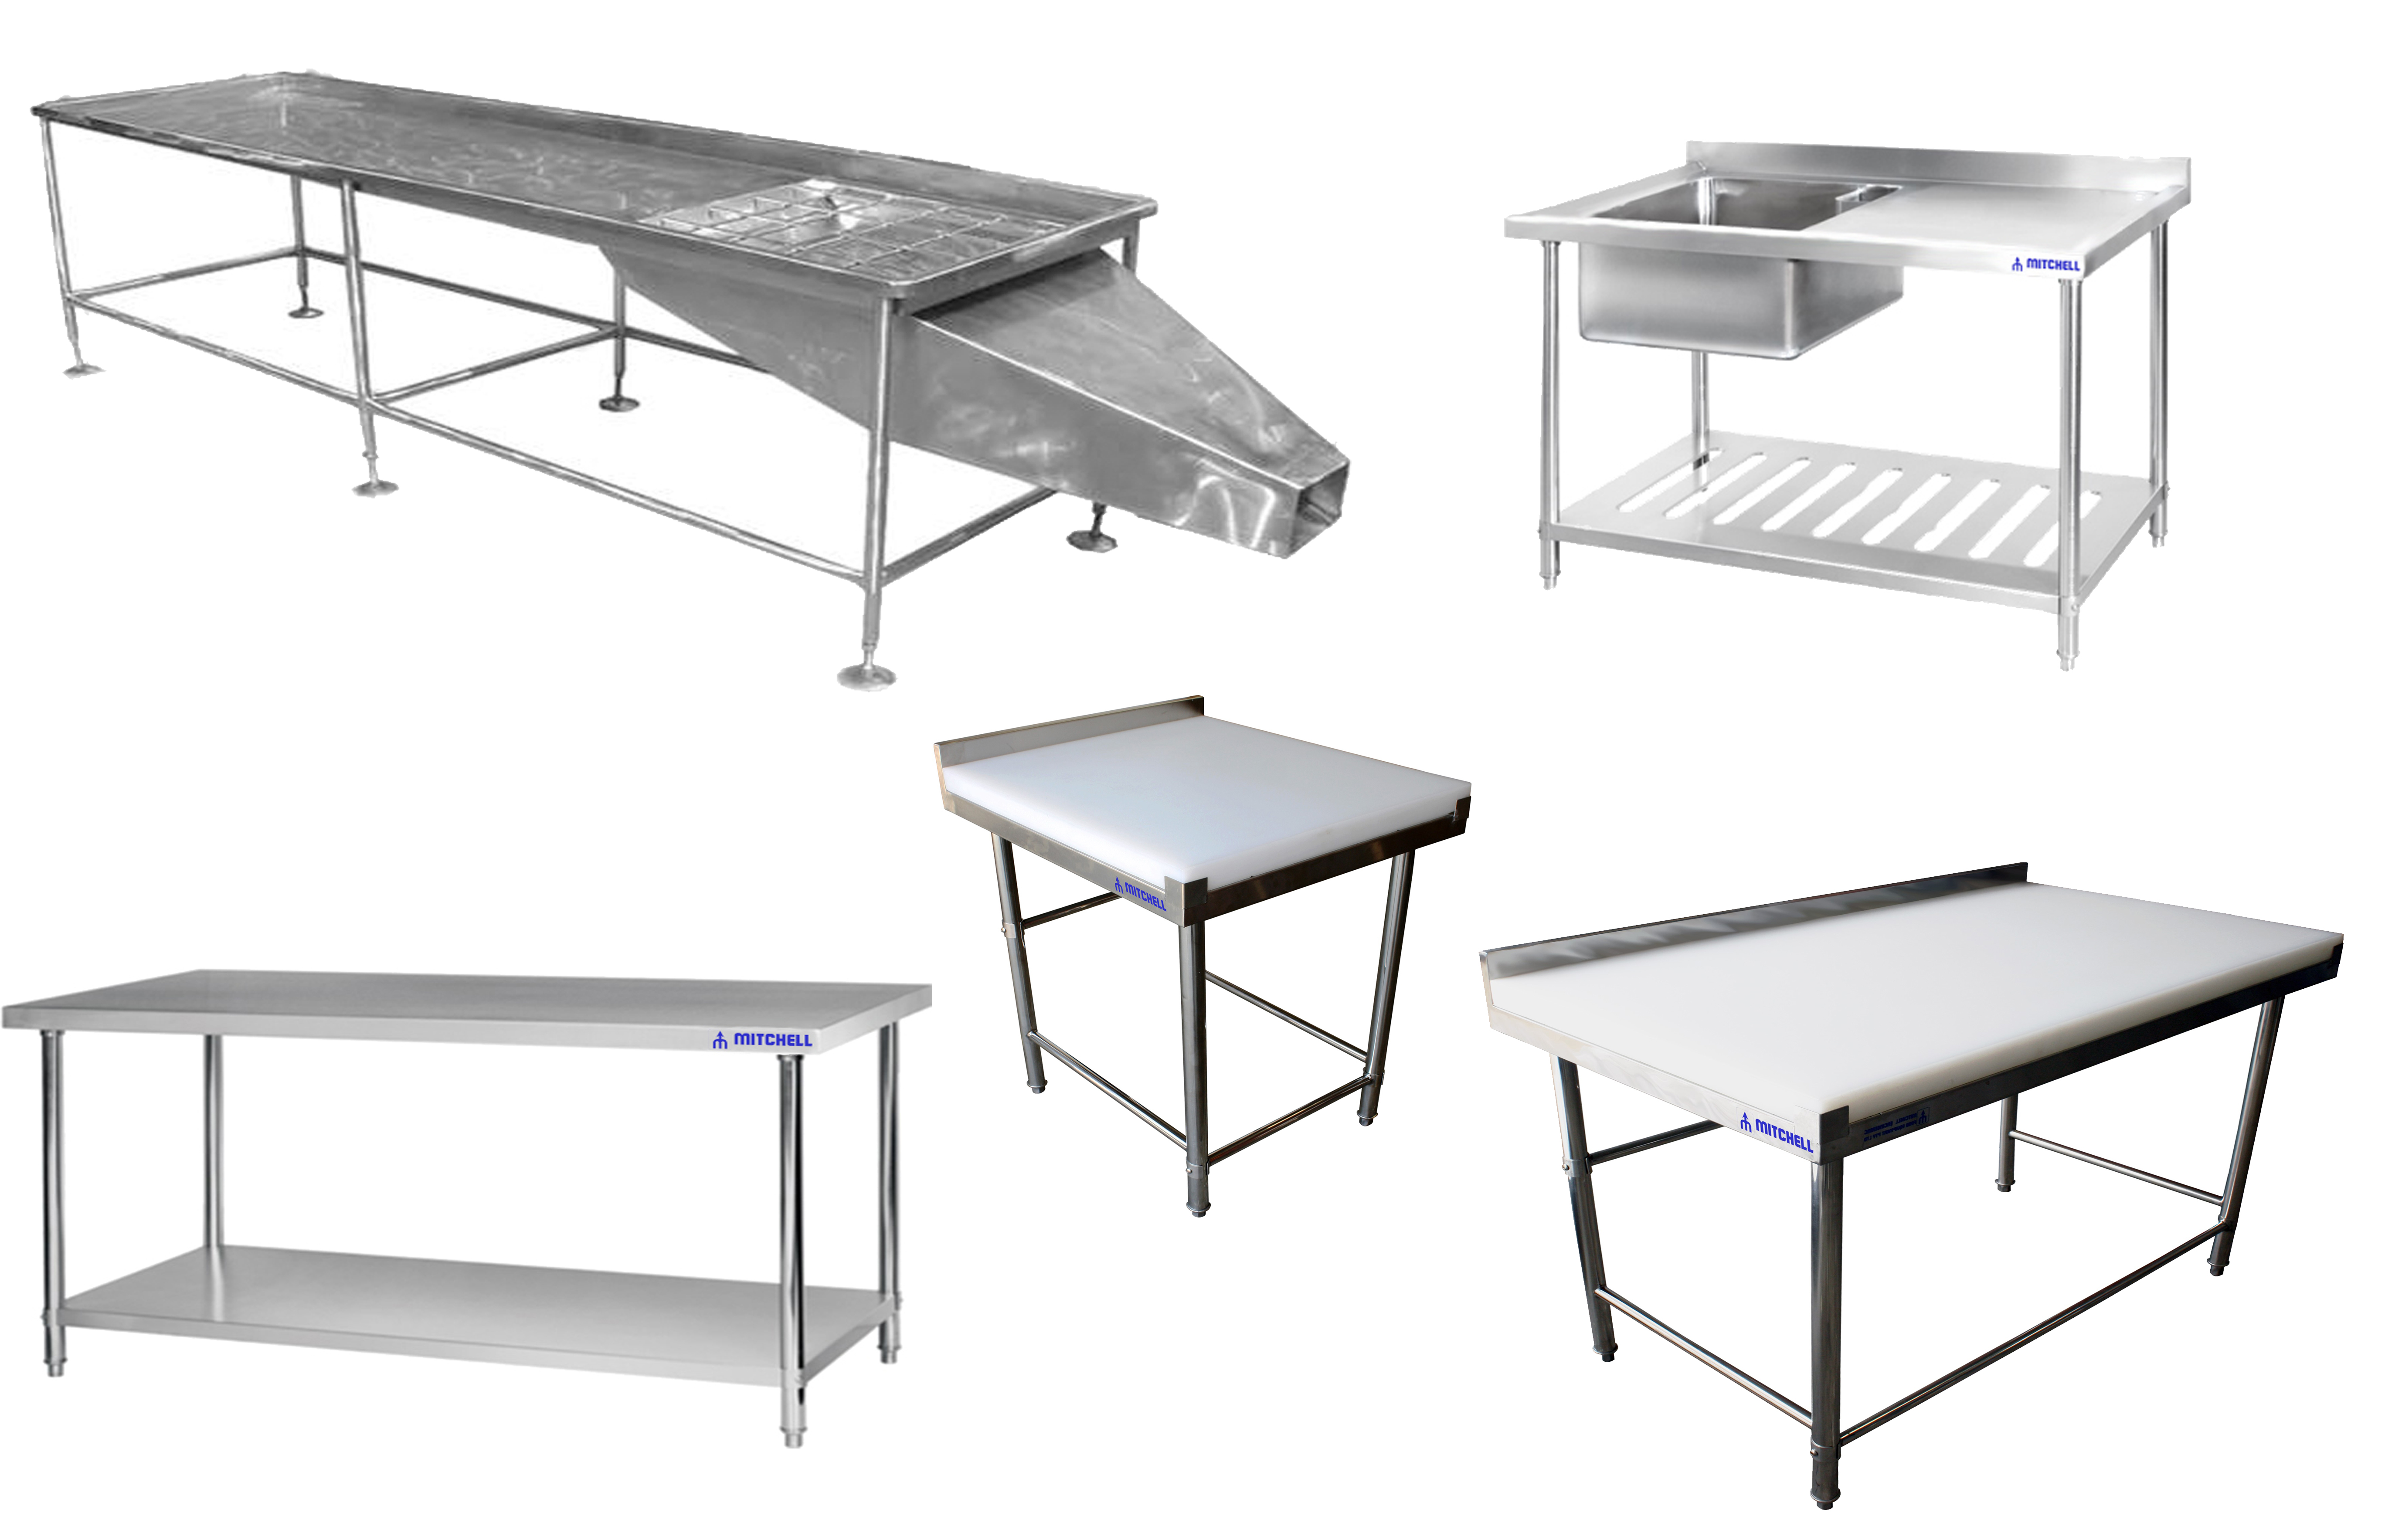 tables-and-troughs-website.jpg